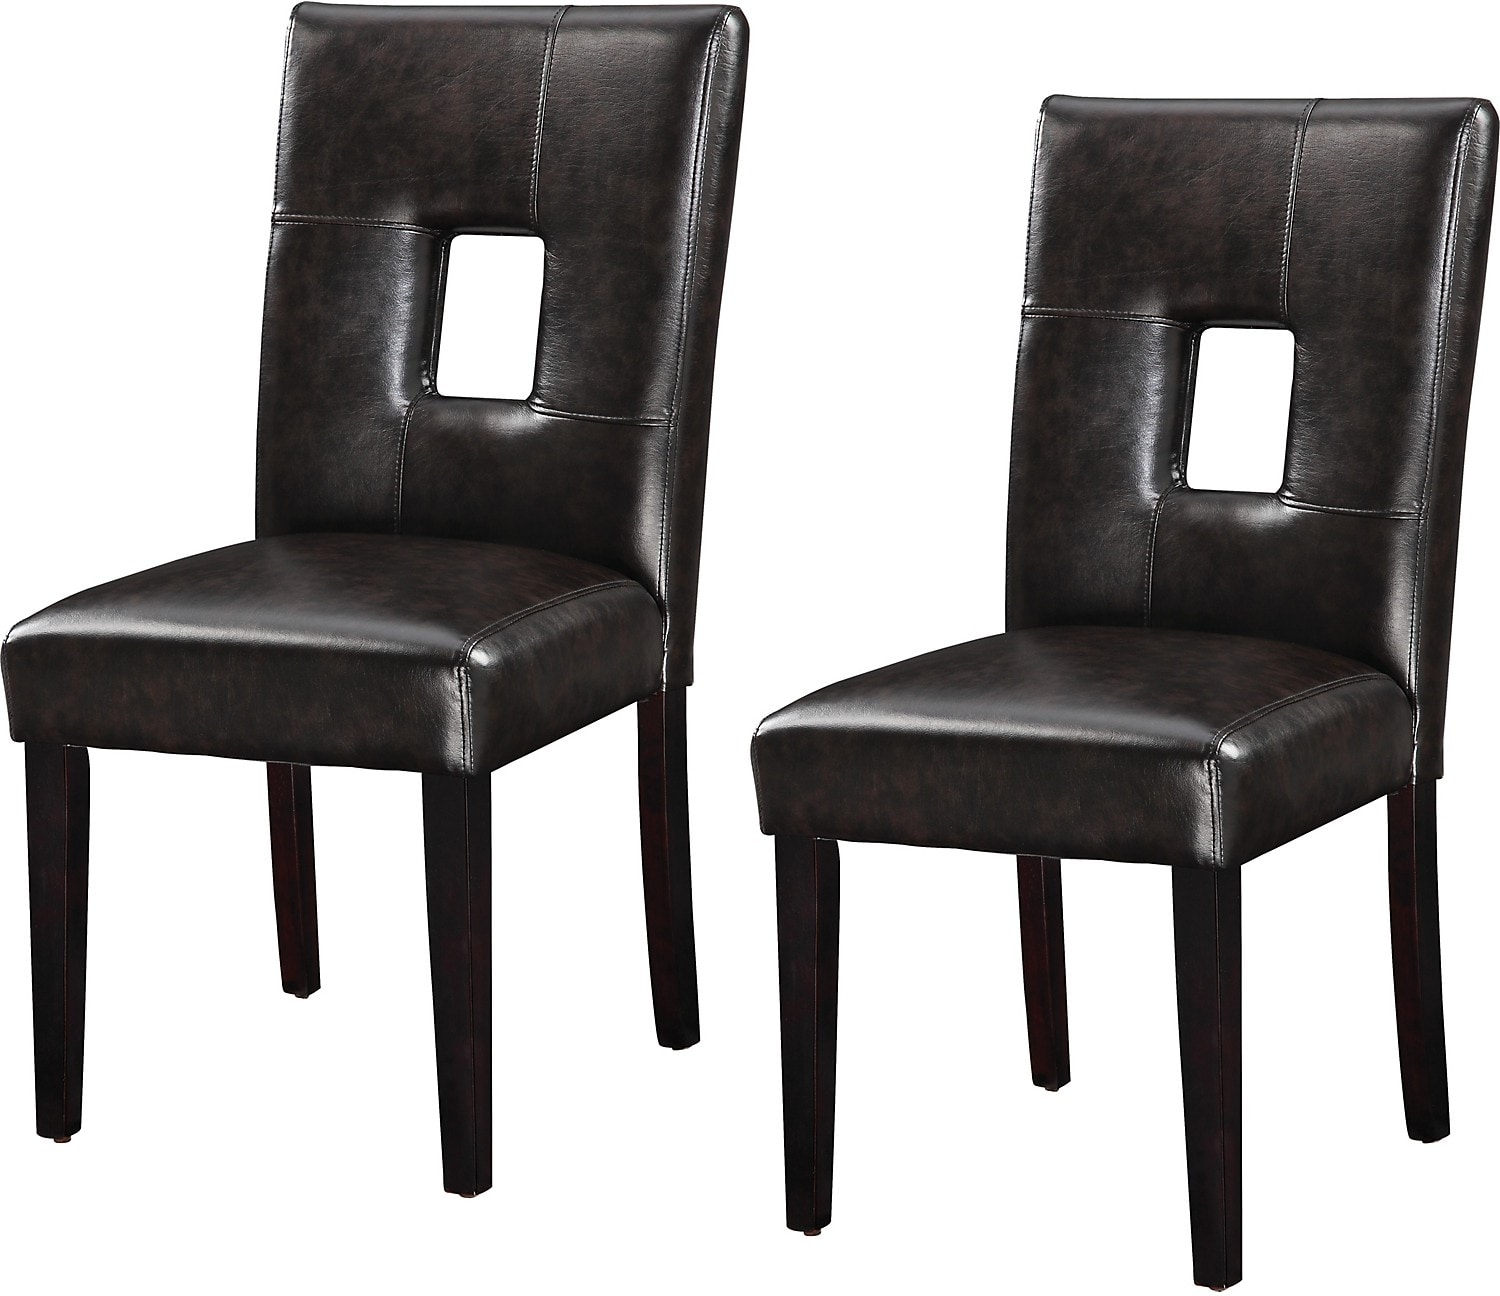 Dining Room Furniture - McKenna 2-Piece Brown Dining Chair Set